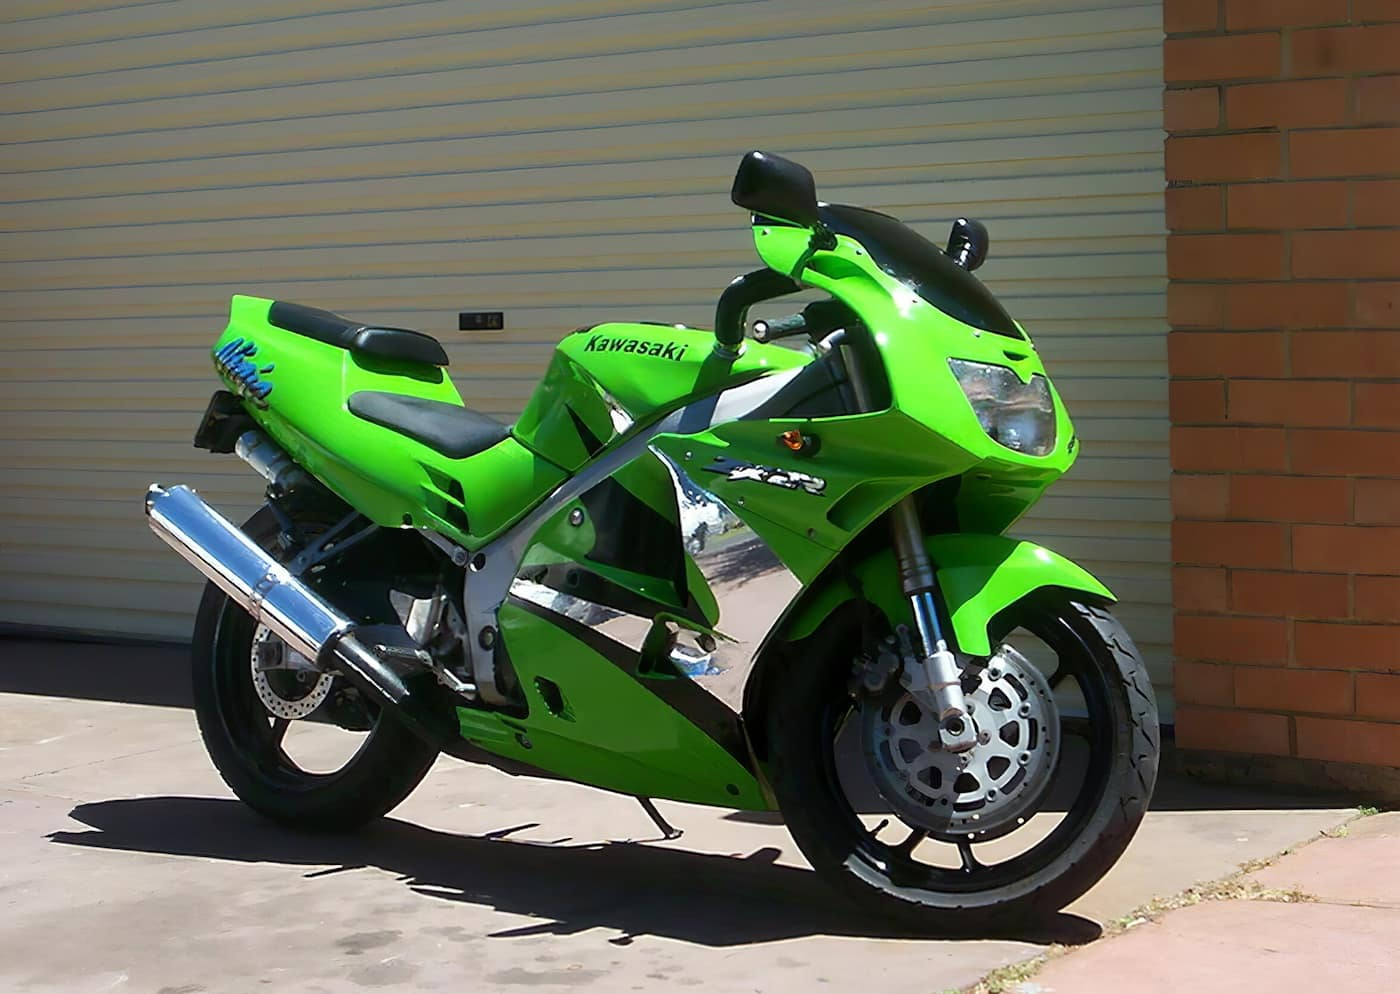 A great track day motorcycle is the Kawasaki ZX-2R, another 4-cylinder 250cc